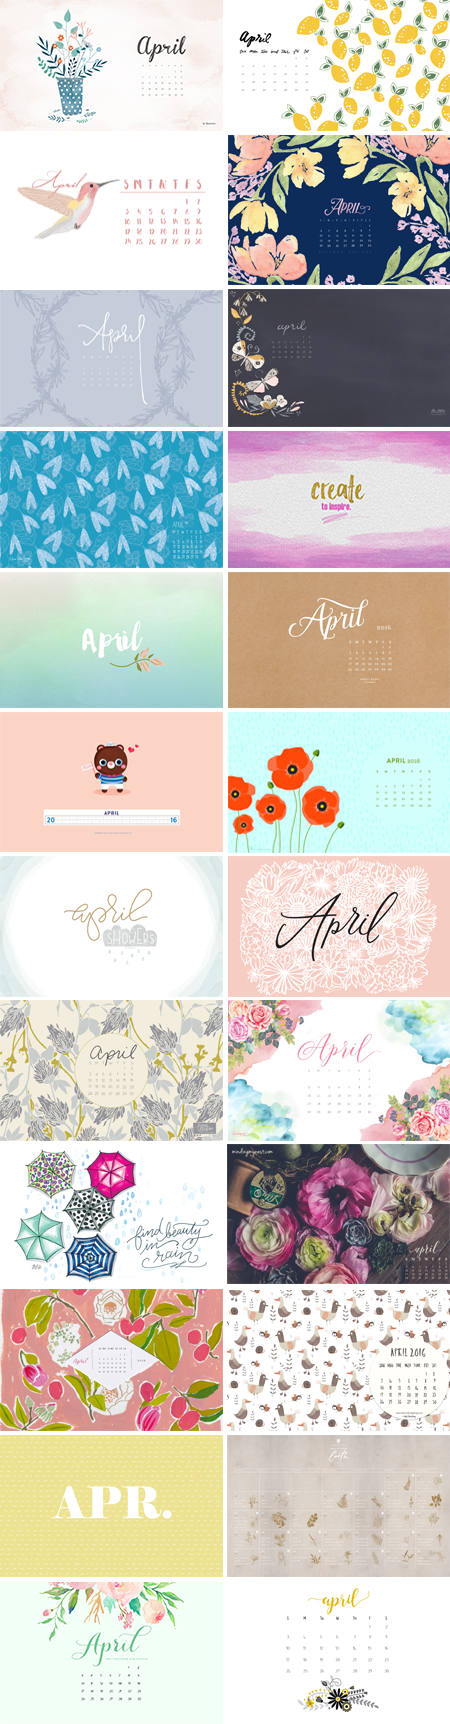 // April 2016 Wallpapers Round-up